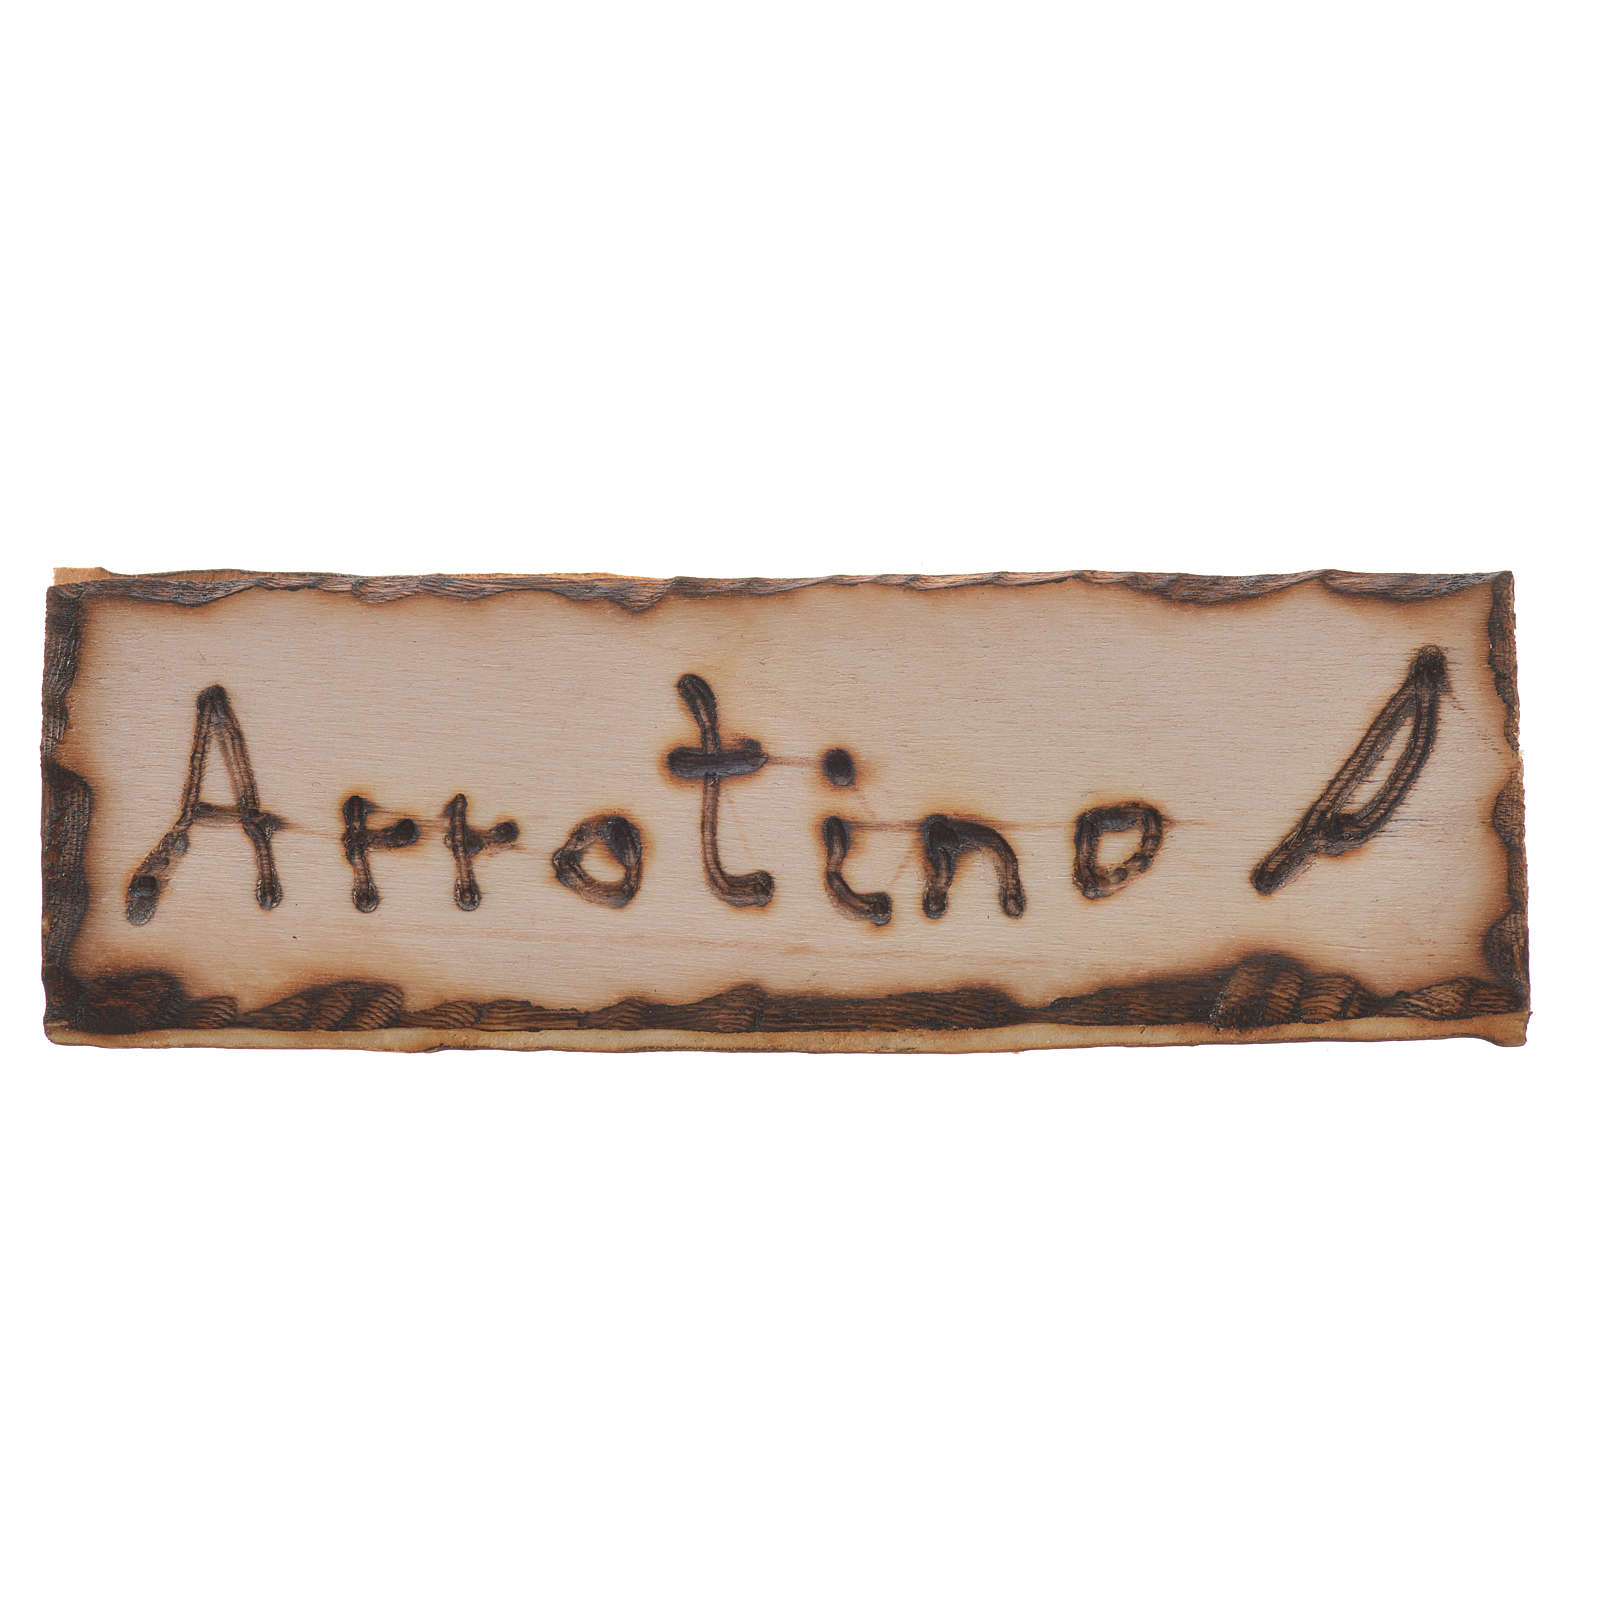 Knife-grinder wooden sign, 2.5x9cm for nativities 4